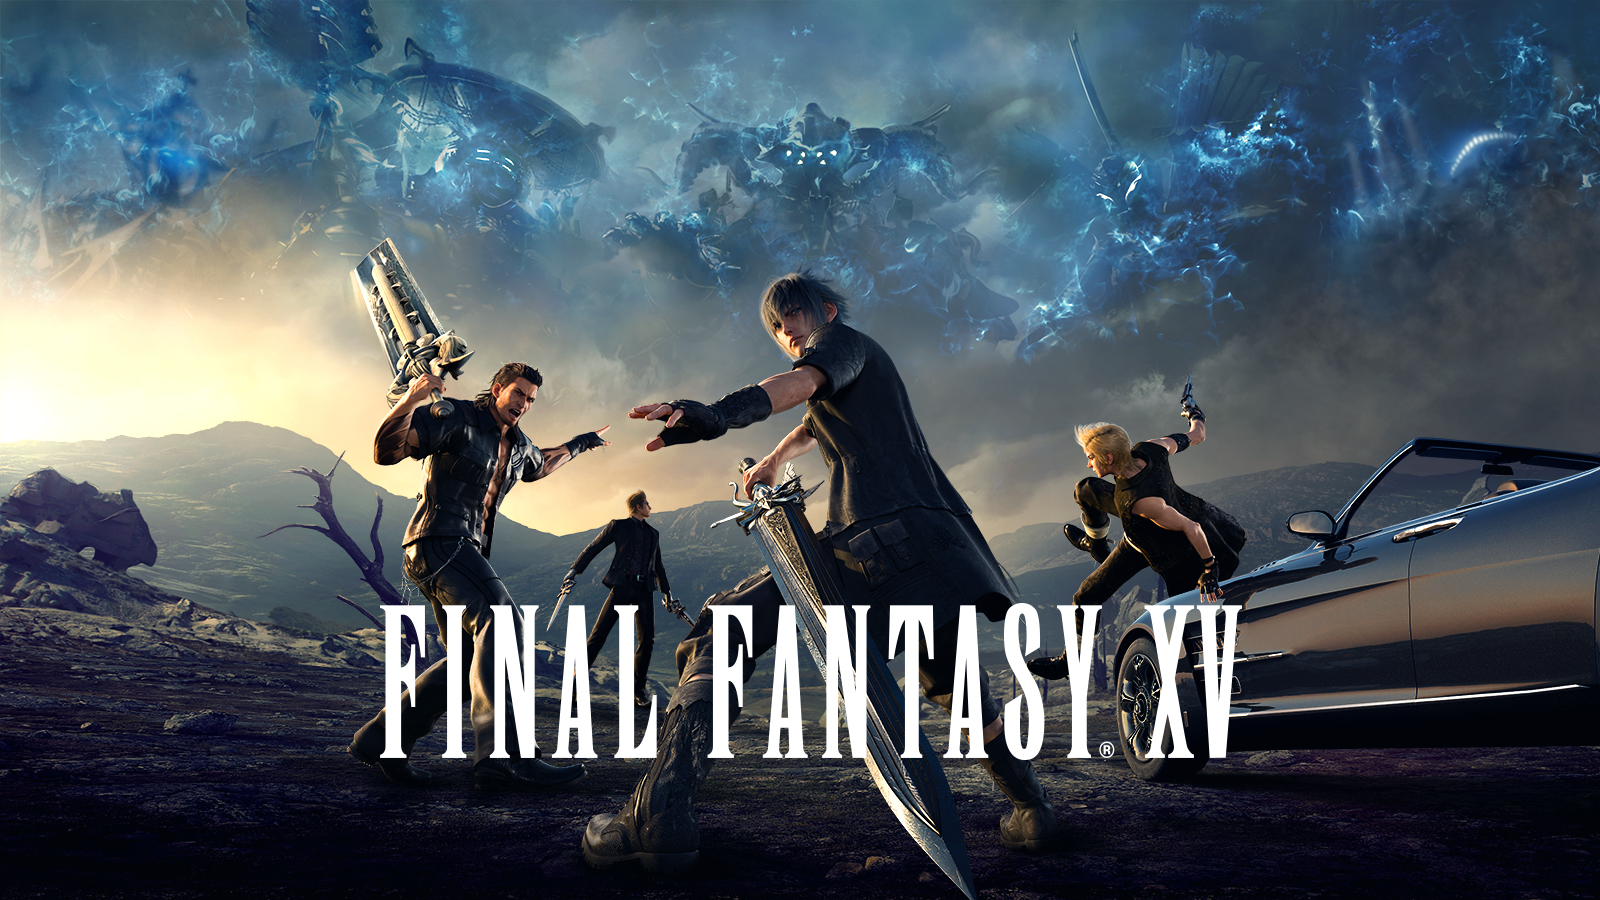 Final Fantasy Xv Wallpapers The Best 79 Images In 2018: Final Fantasy 15 Game Wallpaper 2017